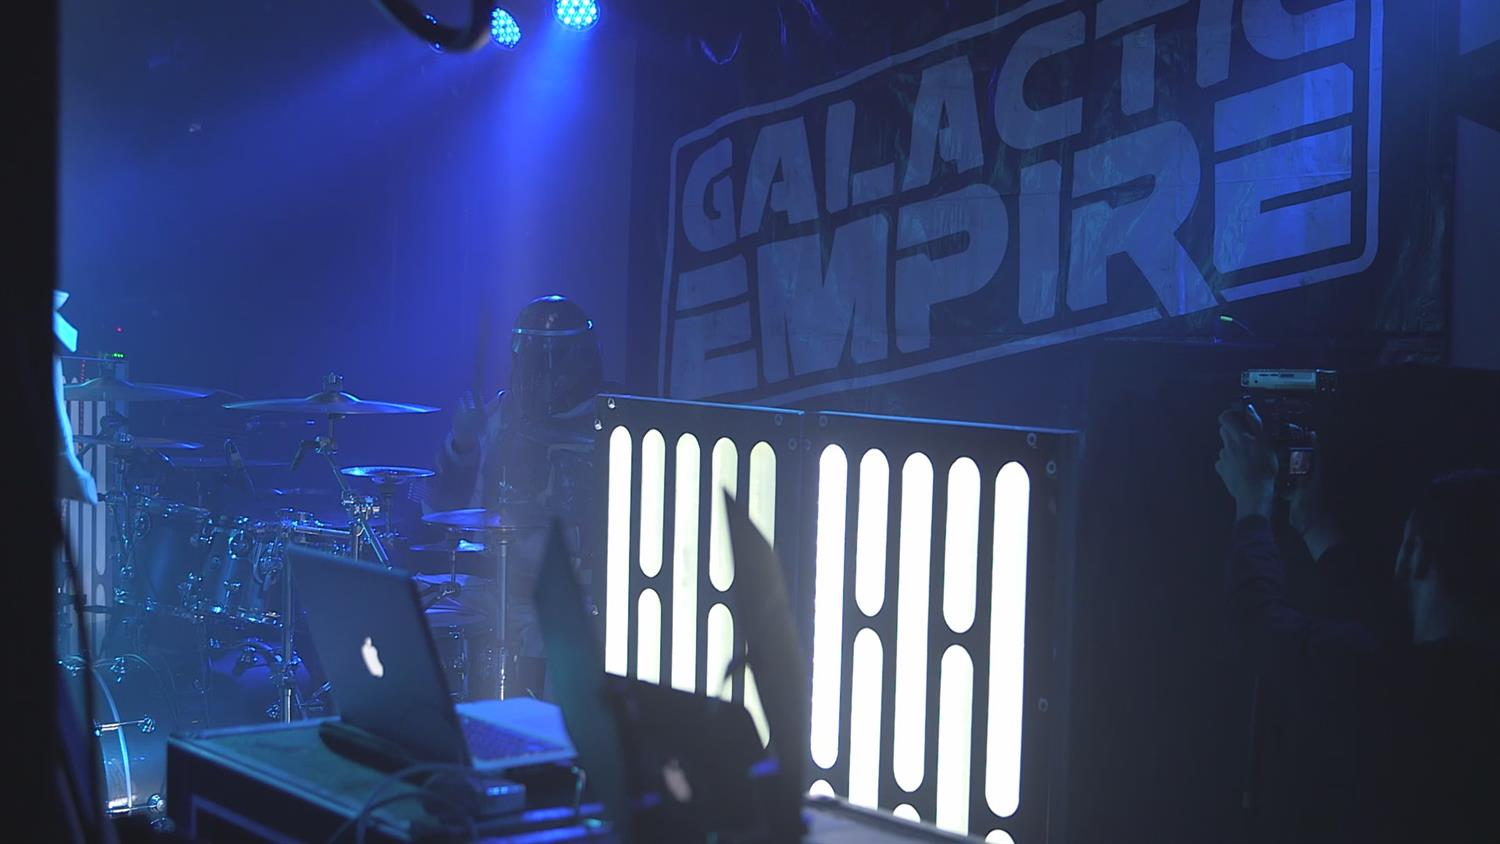 Star Wars Heavy Metal: Meet Galactic Empire